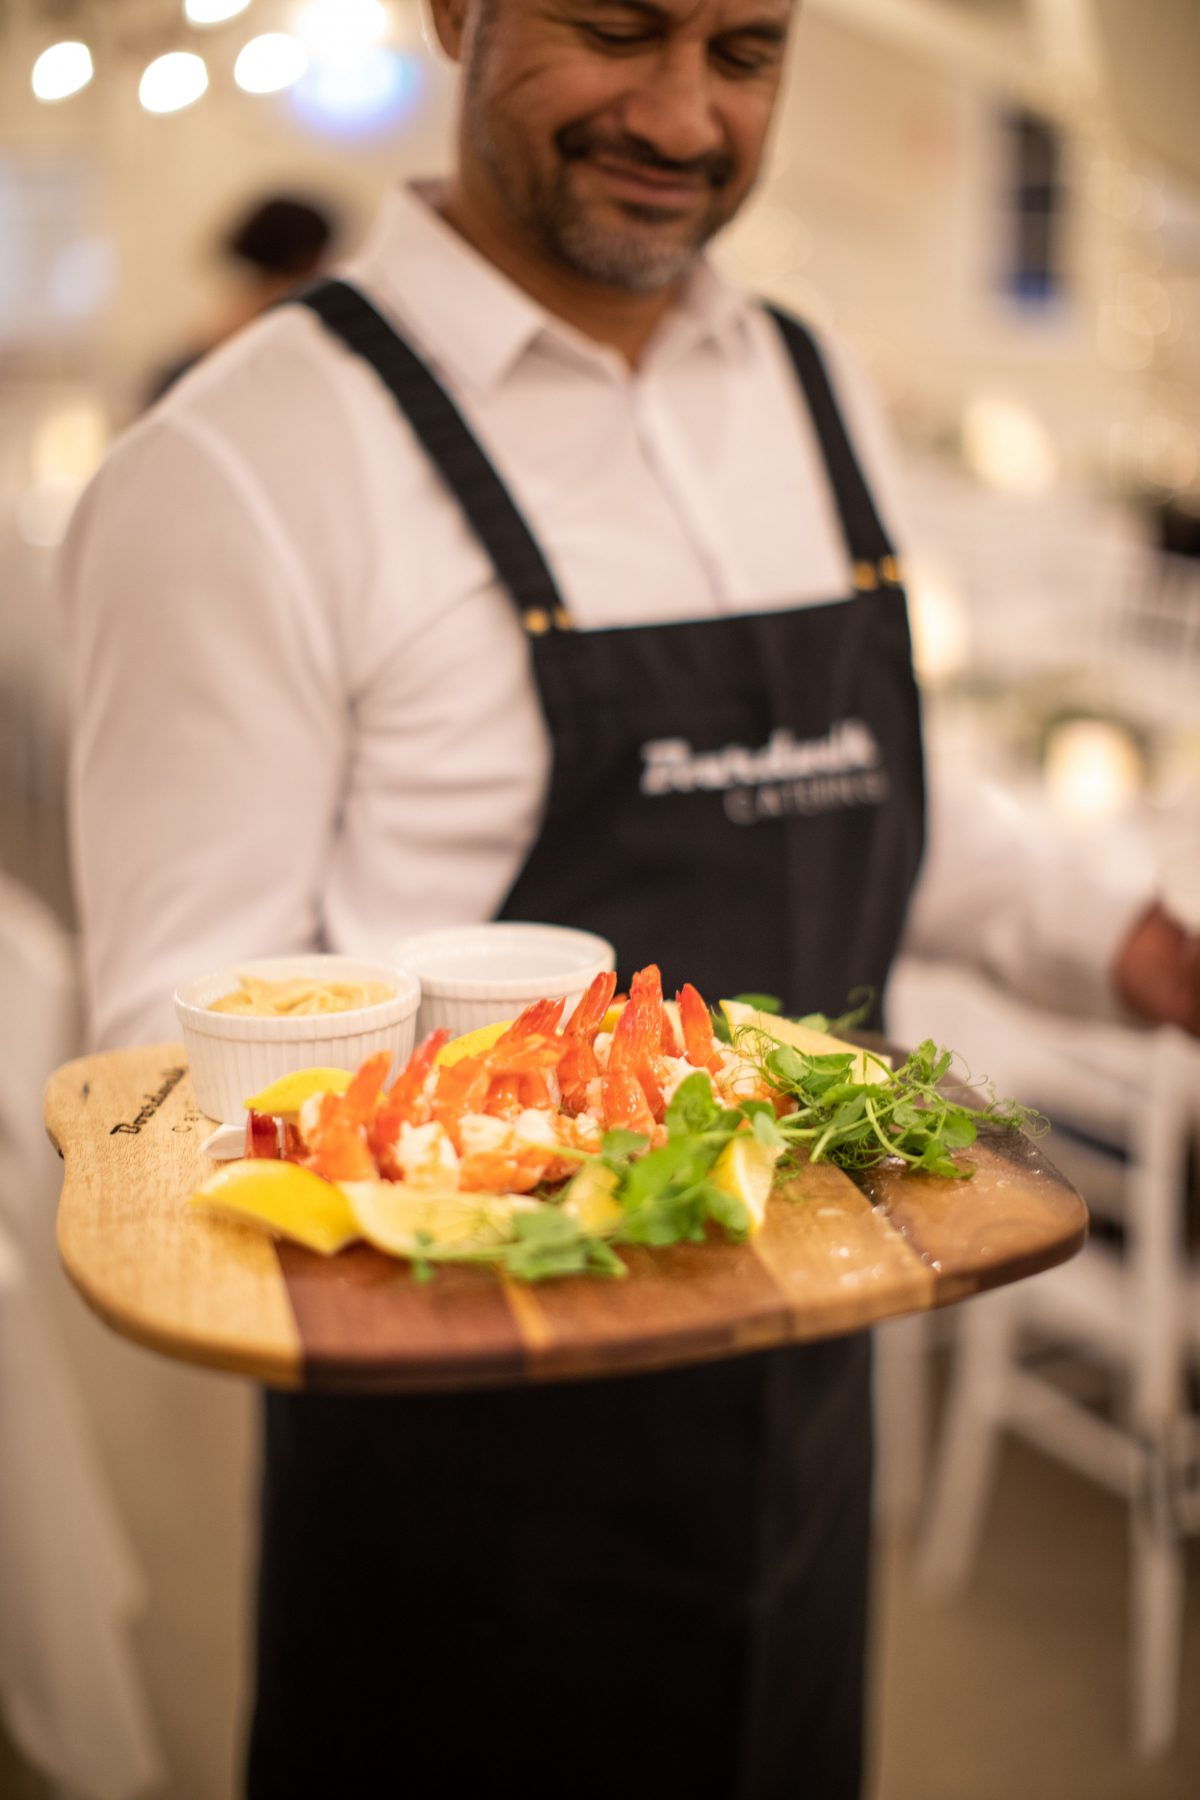 Wedding catering Sydney - Canapes